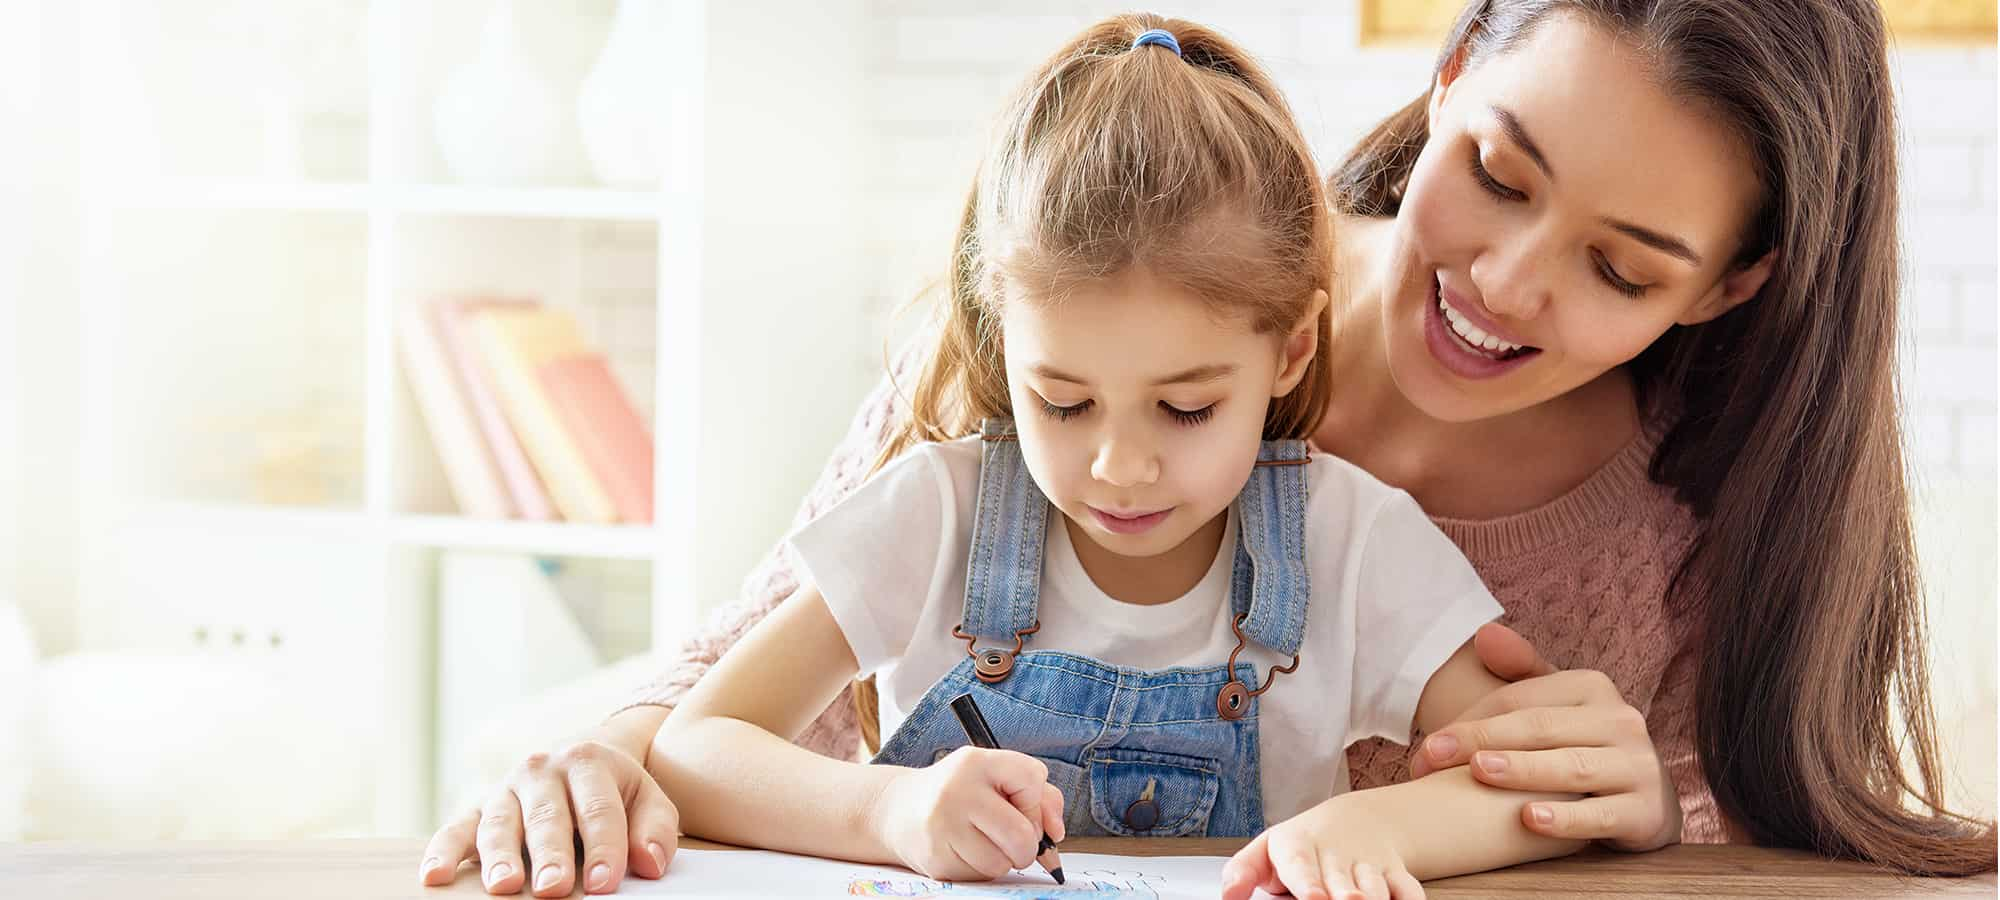 How to Manage as Working Parents During the School Holidays